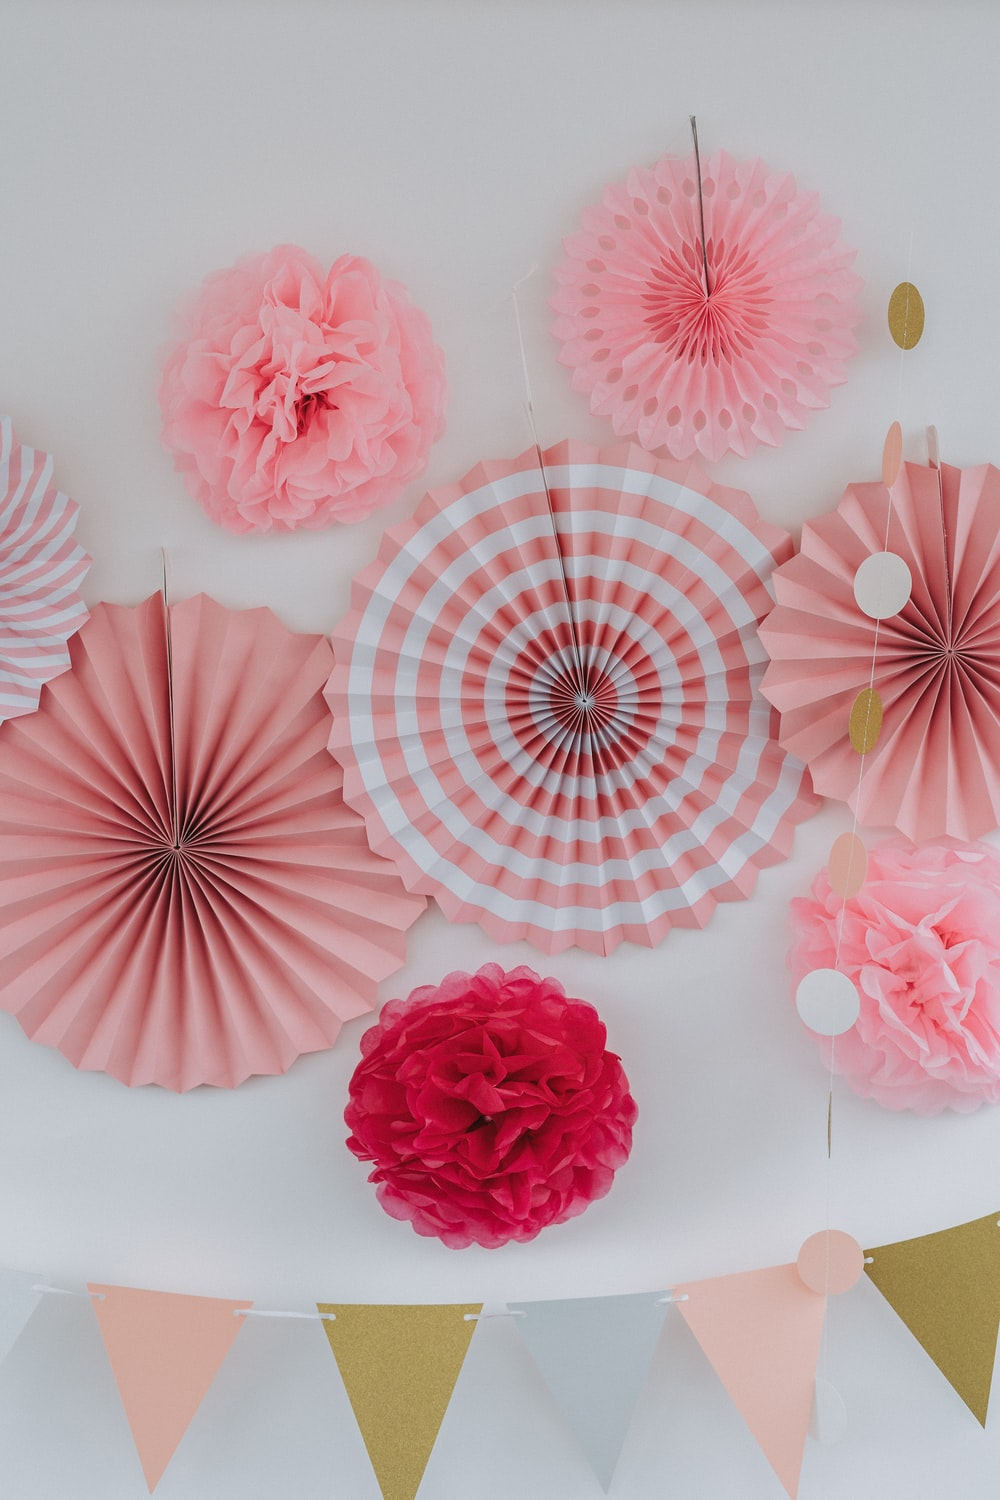 pink and white floral umbrella